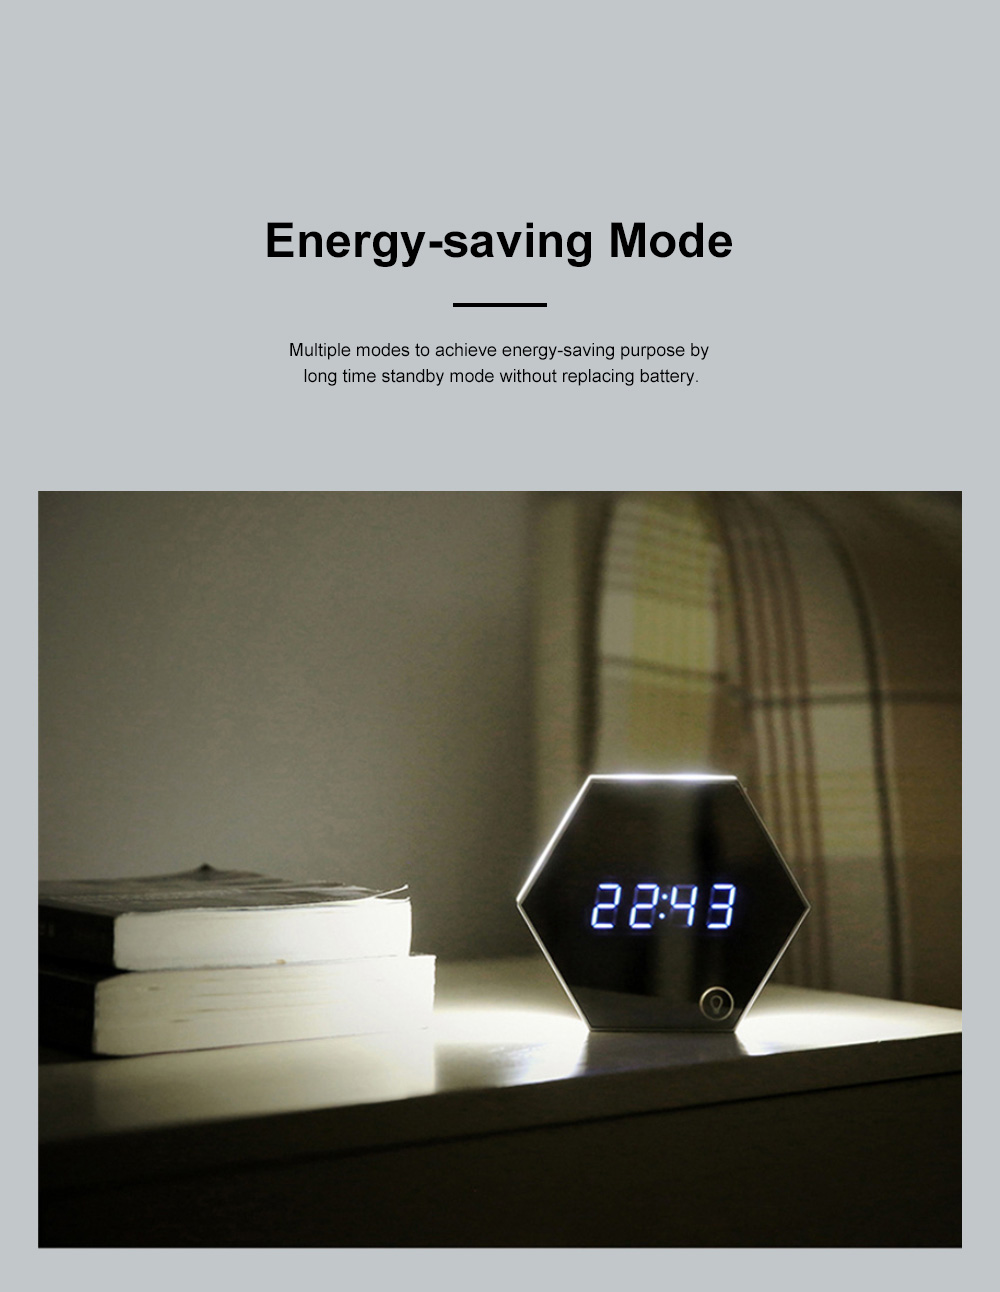 Multifunctional Mirror Alarm Clock for Office Bedroom Use Sophisticated Infinitely Adjustable Light LED Clock Clearly Visible Time Display Cosmetic Mirror 8